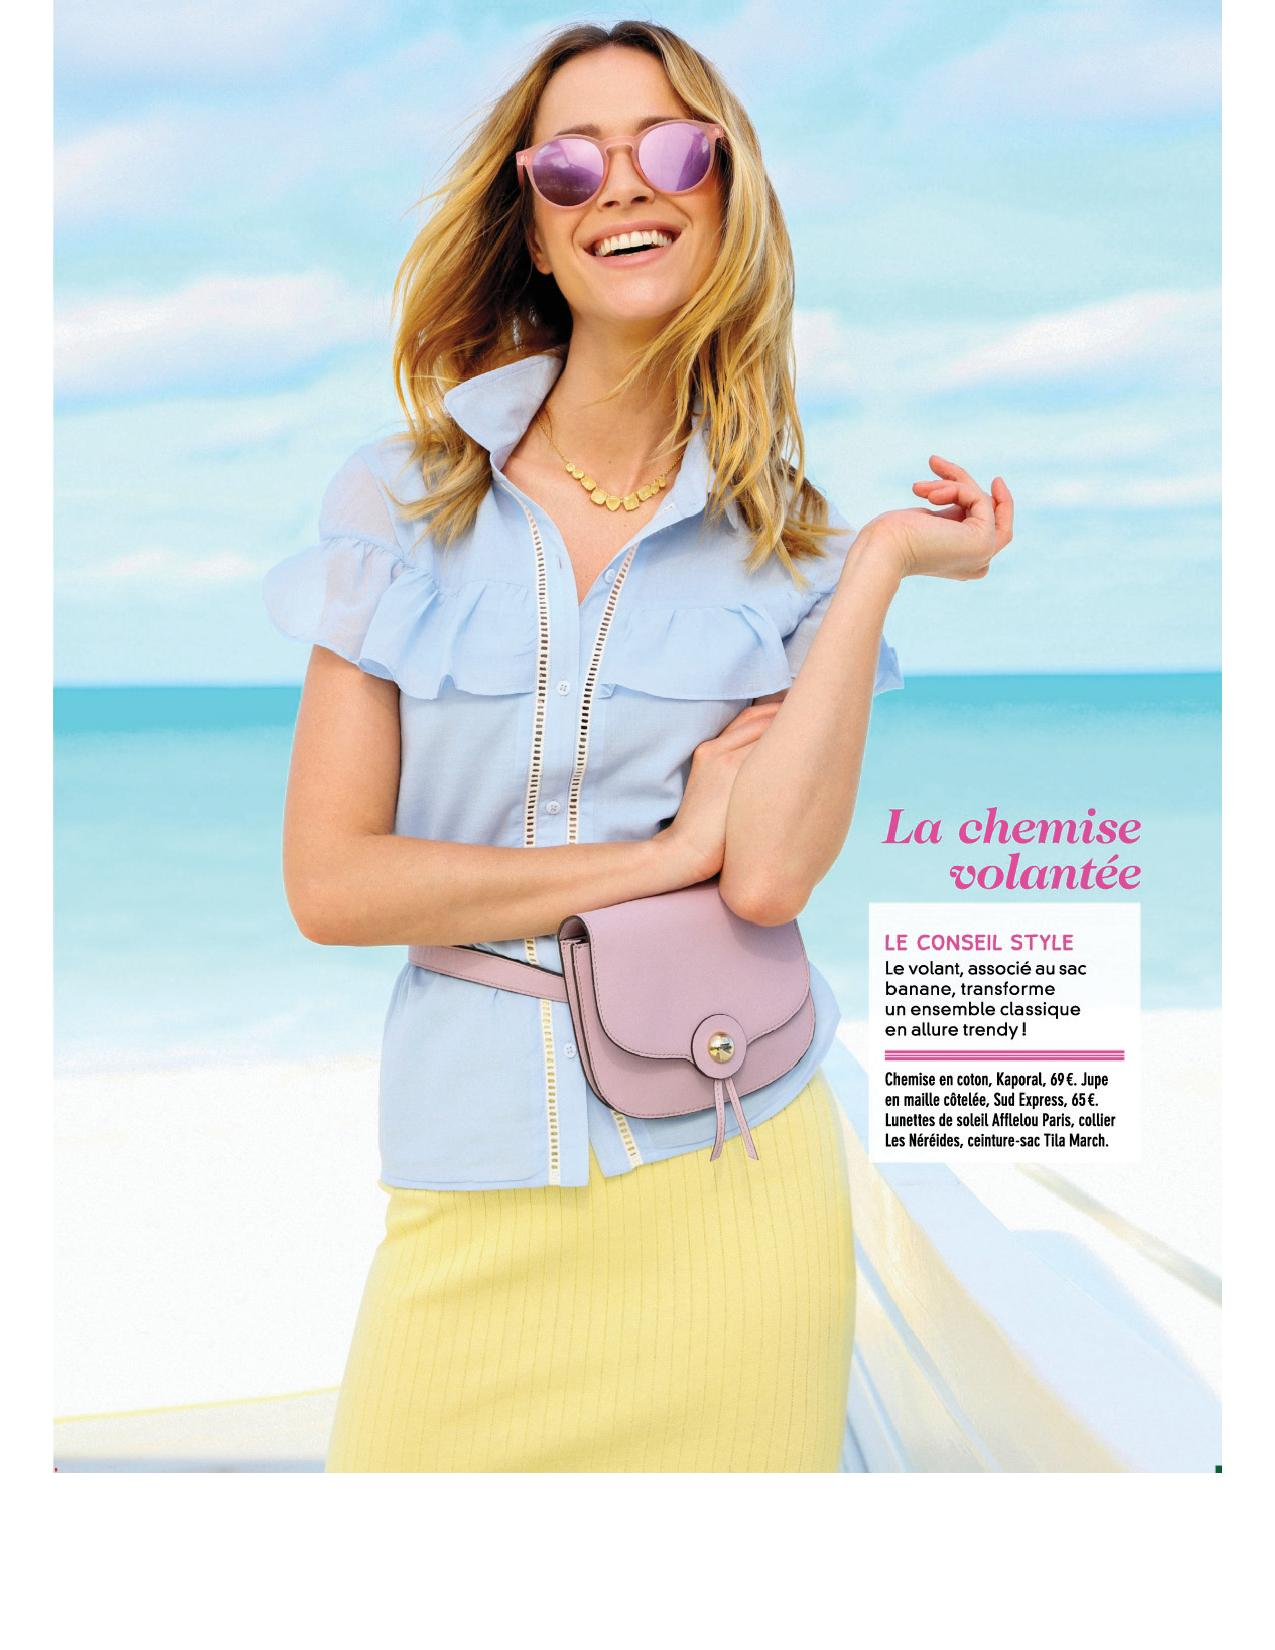 Femme Actuelle Models - Page 26 - General Discussion - Bellazon 04a9db74a6f4